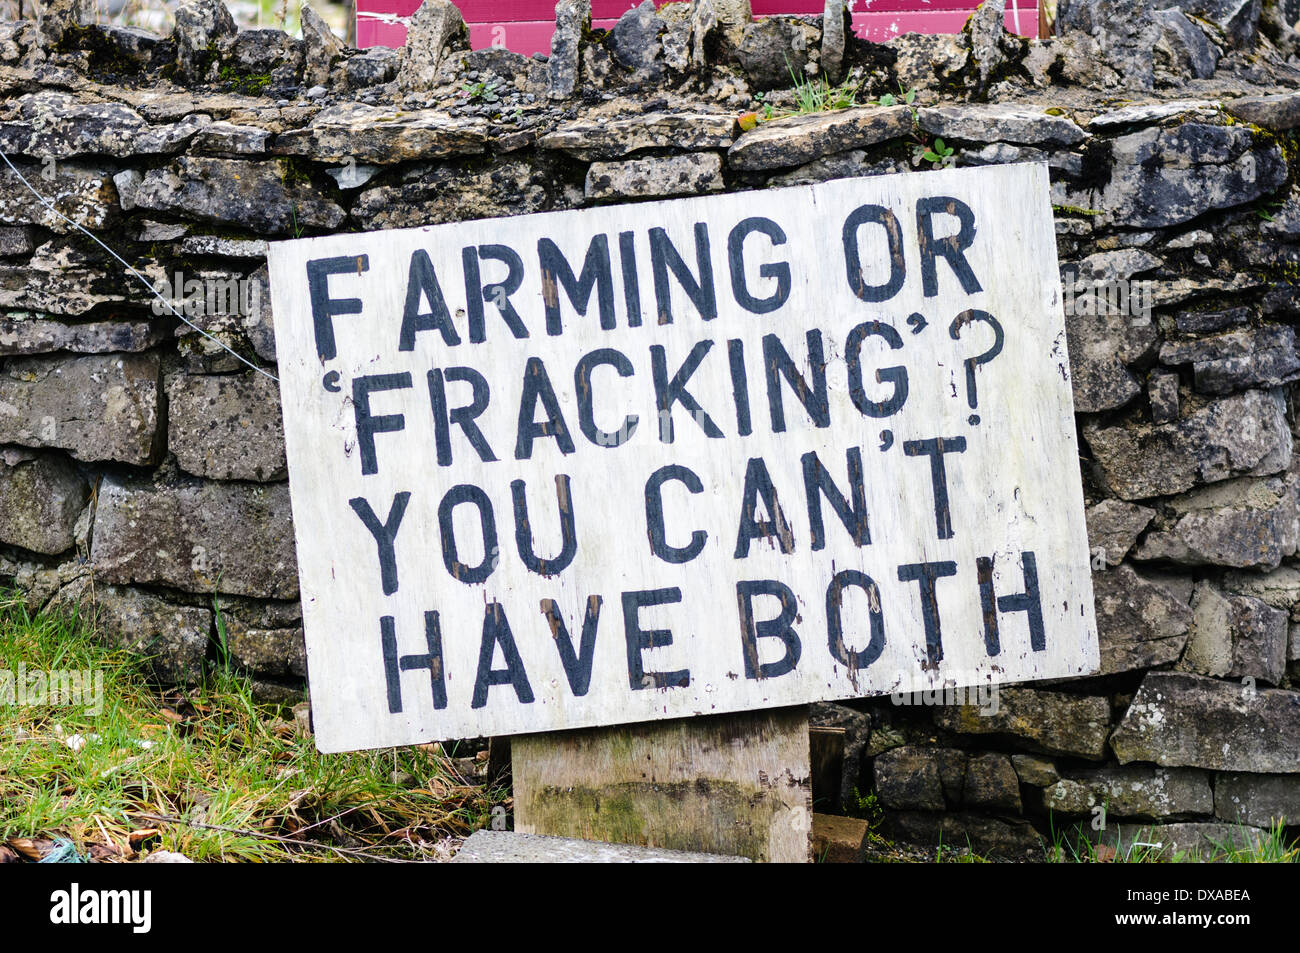 Sign in a rural area protesting against potential fracking saying 'Farming or Fracking? You can't have both.' - Stock Image